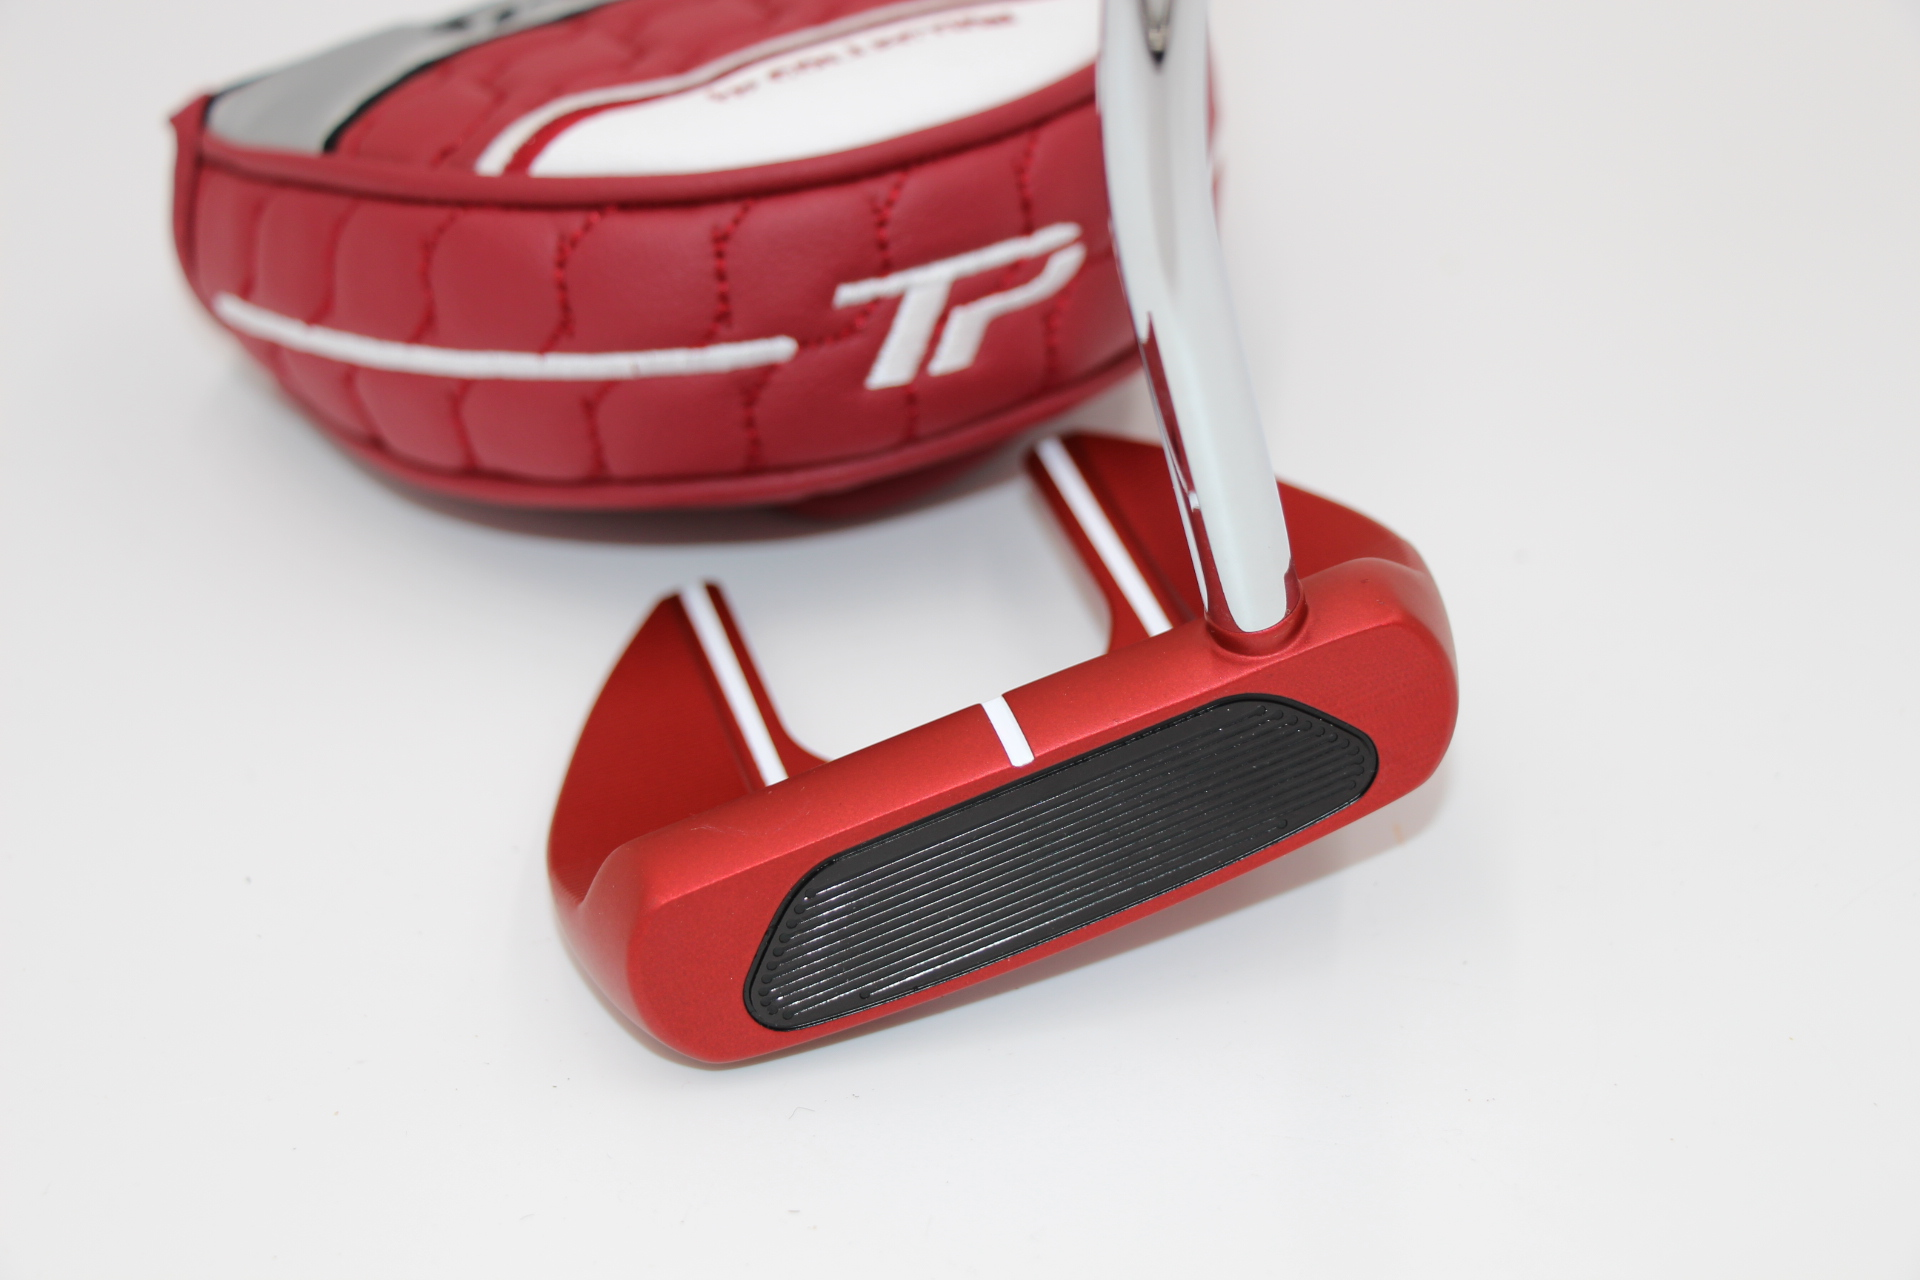 TaylorMade TP Collection Ardmore 2 Red Putter